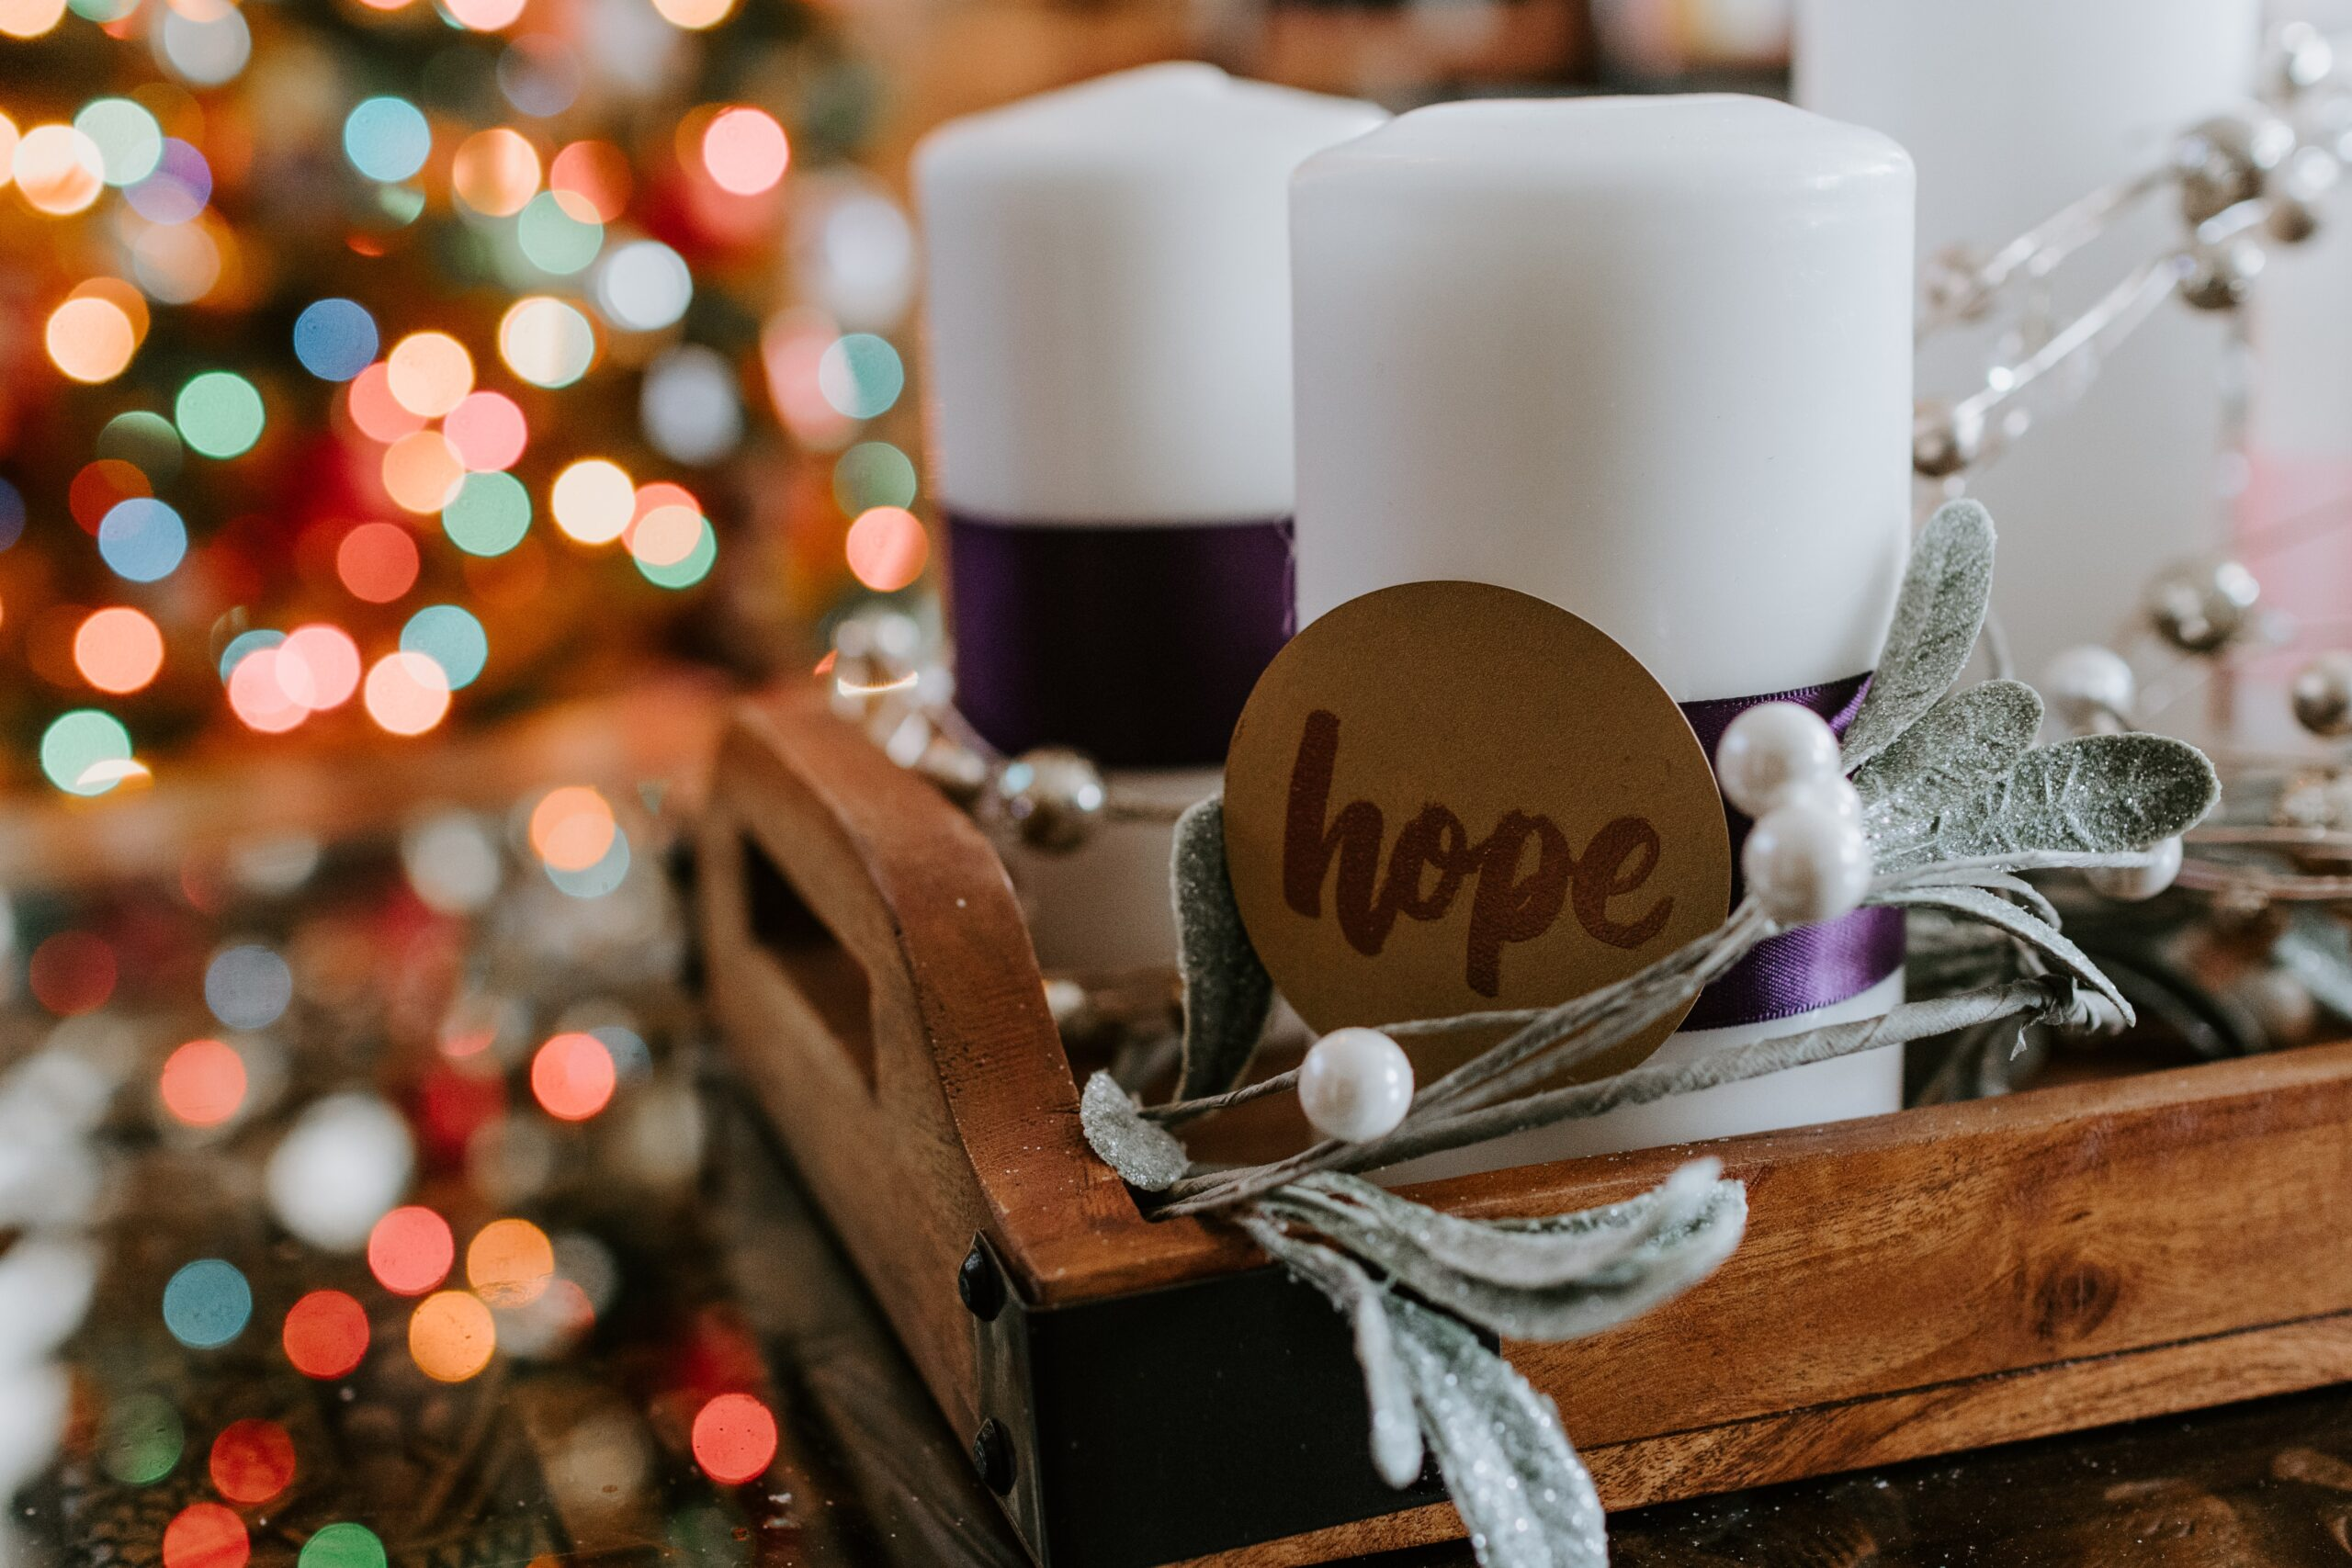 Christmas and the coming of our hope